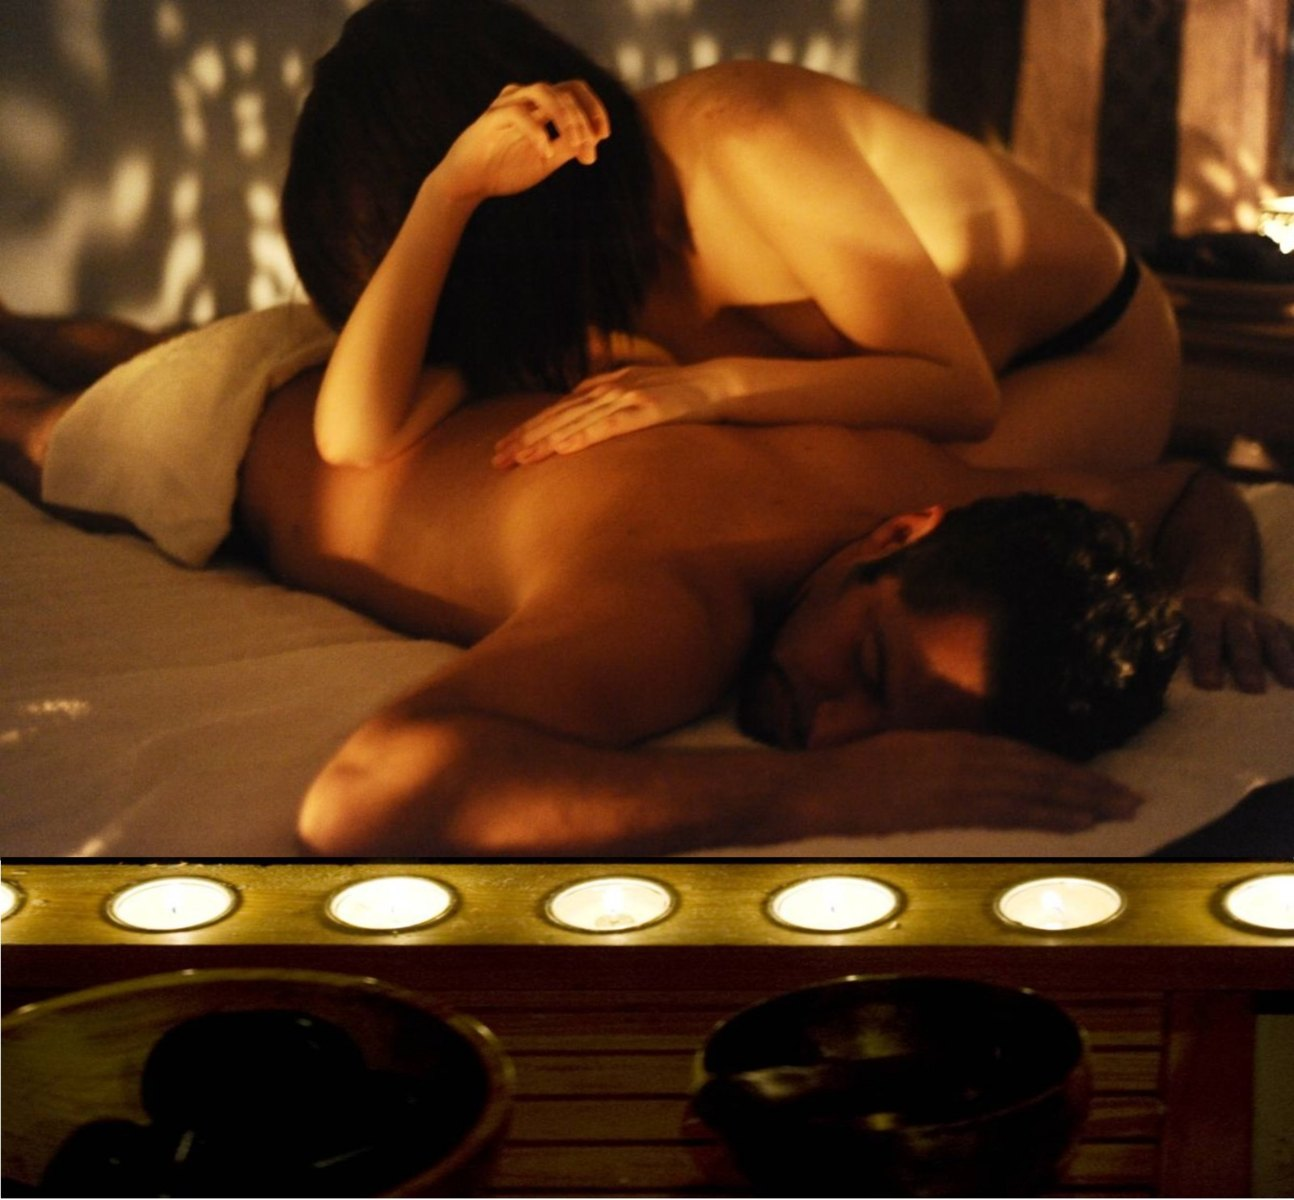 Relax with an erotic massage in Barcelona